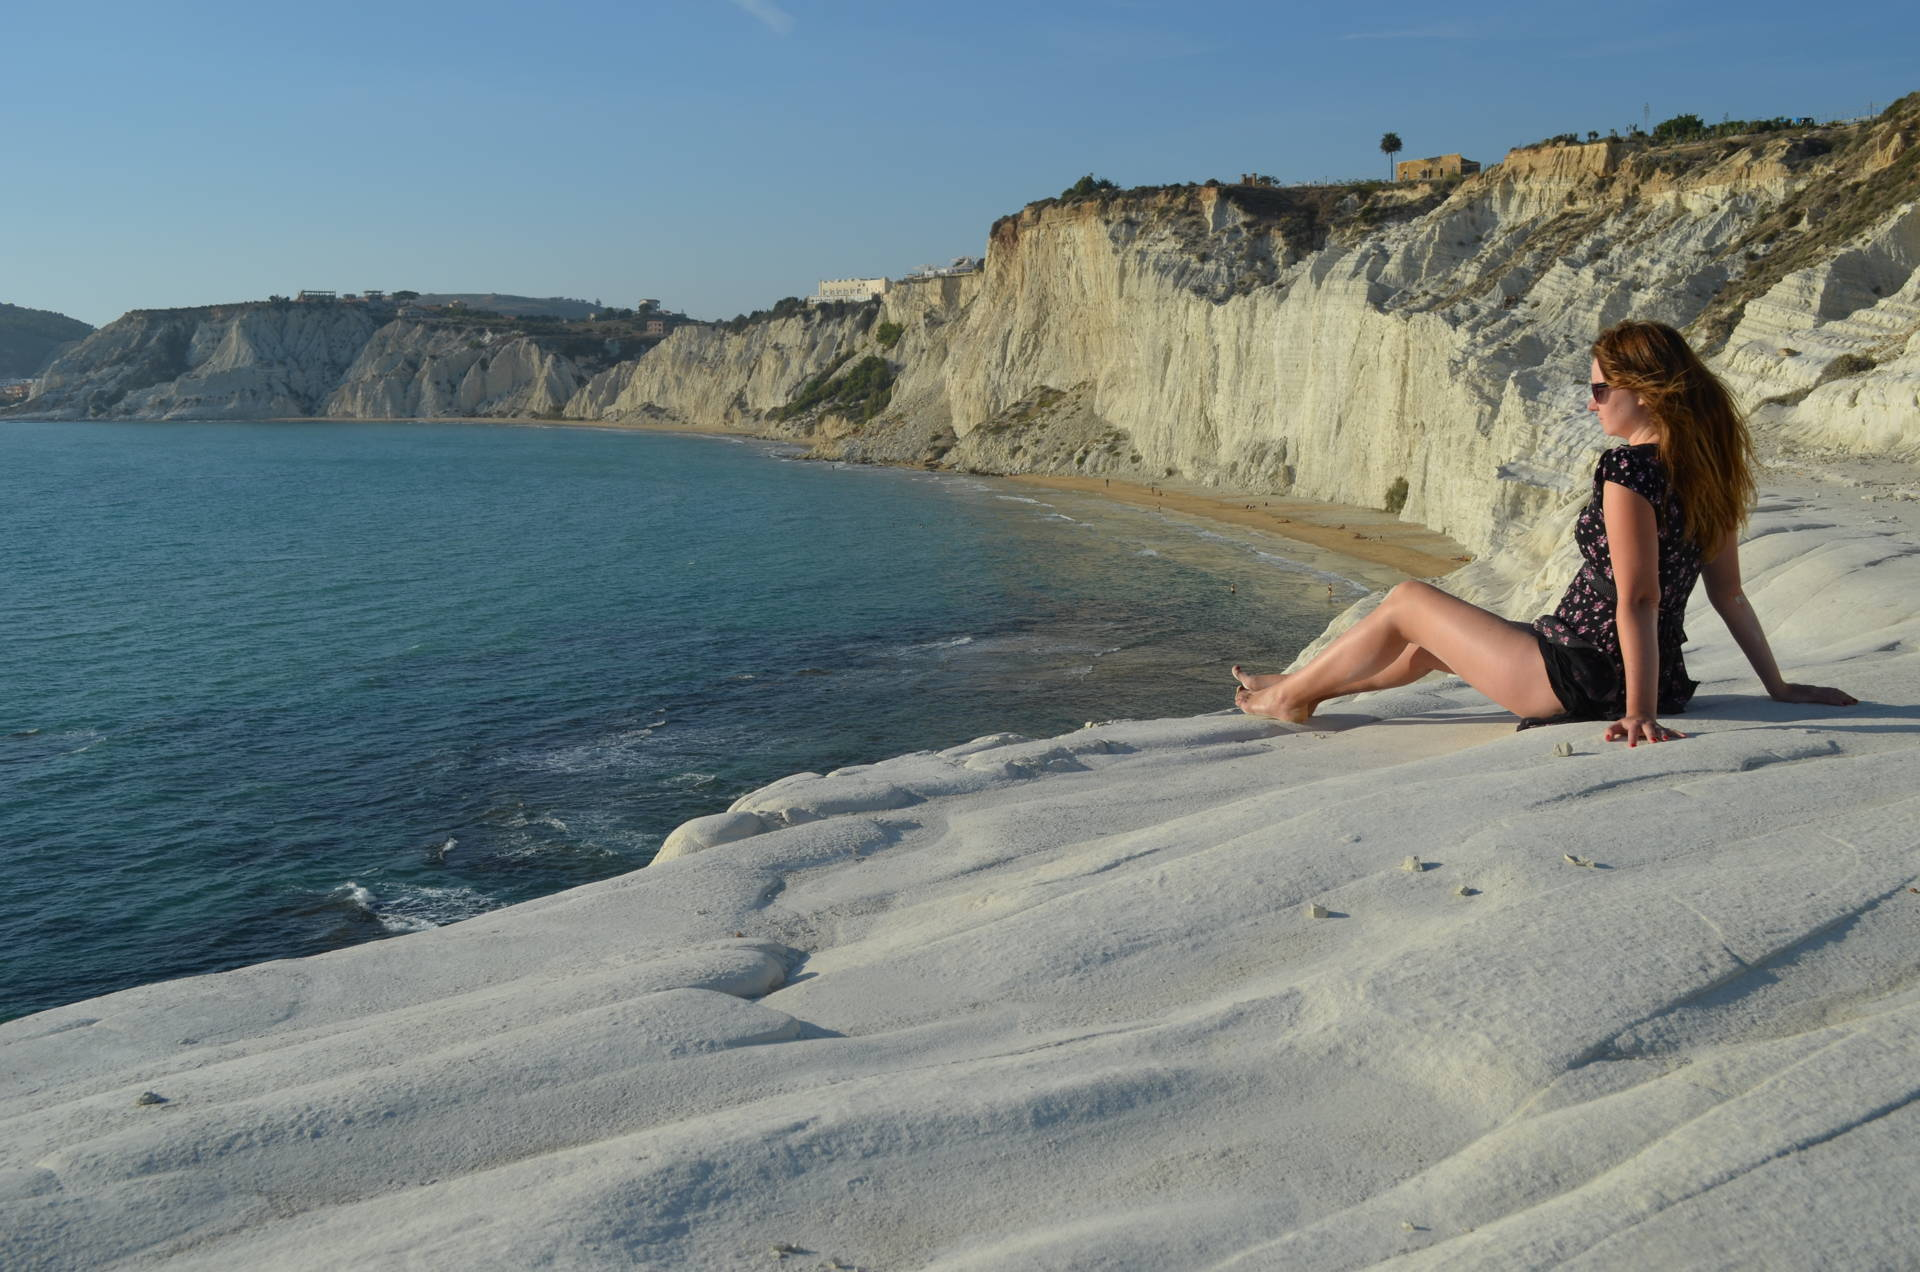 scala dei turchi, sexy, sicily, travel sicily, best places to visit in sicily, scala dei turchi sexy, sexy girl, girl posing on scala dei turchi